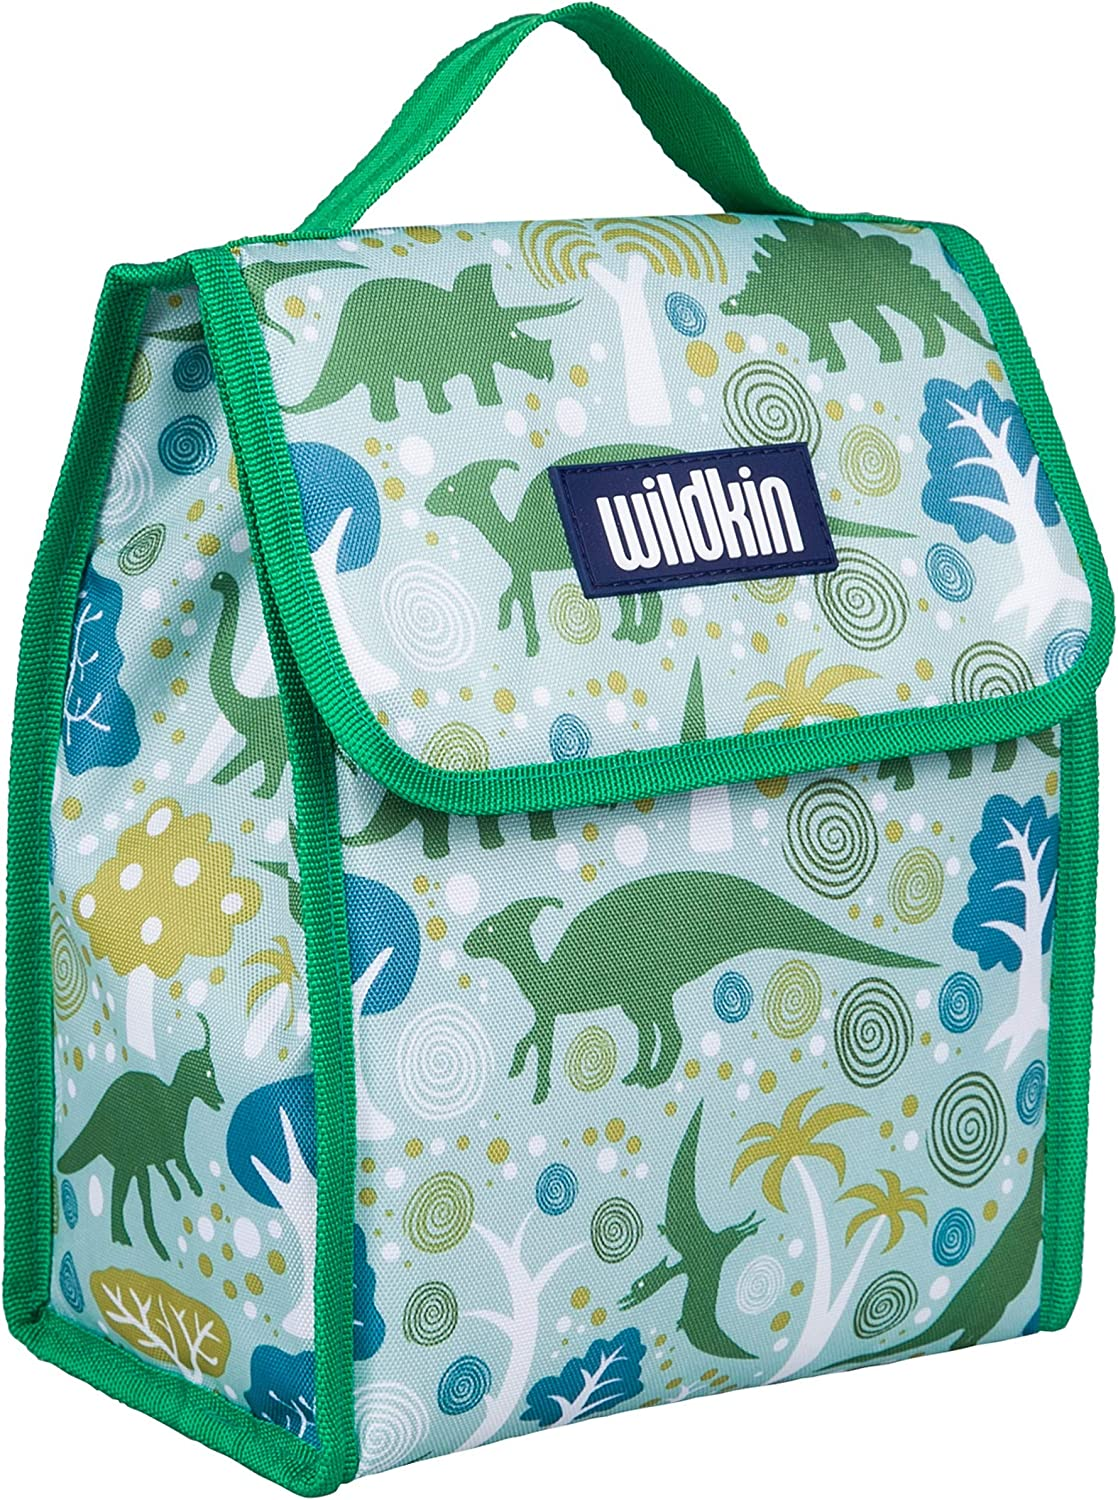 Wildkin Kids Insulated Lunch Bag for Boys and Girls, Lunch Bags is Ideal Size for Packing Hot or Cold Snacks for School and Travel, Mom's Choice Award Winner, BPA-Free, Olive Kids (Dinomite Dinosaurs)